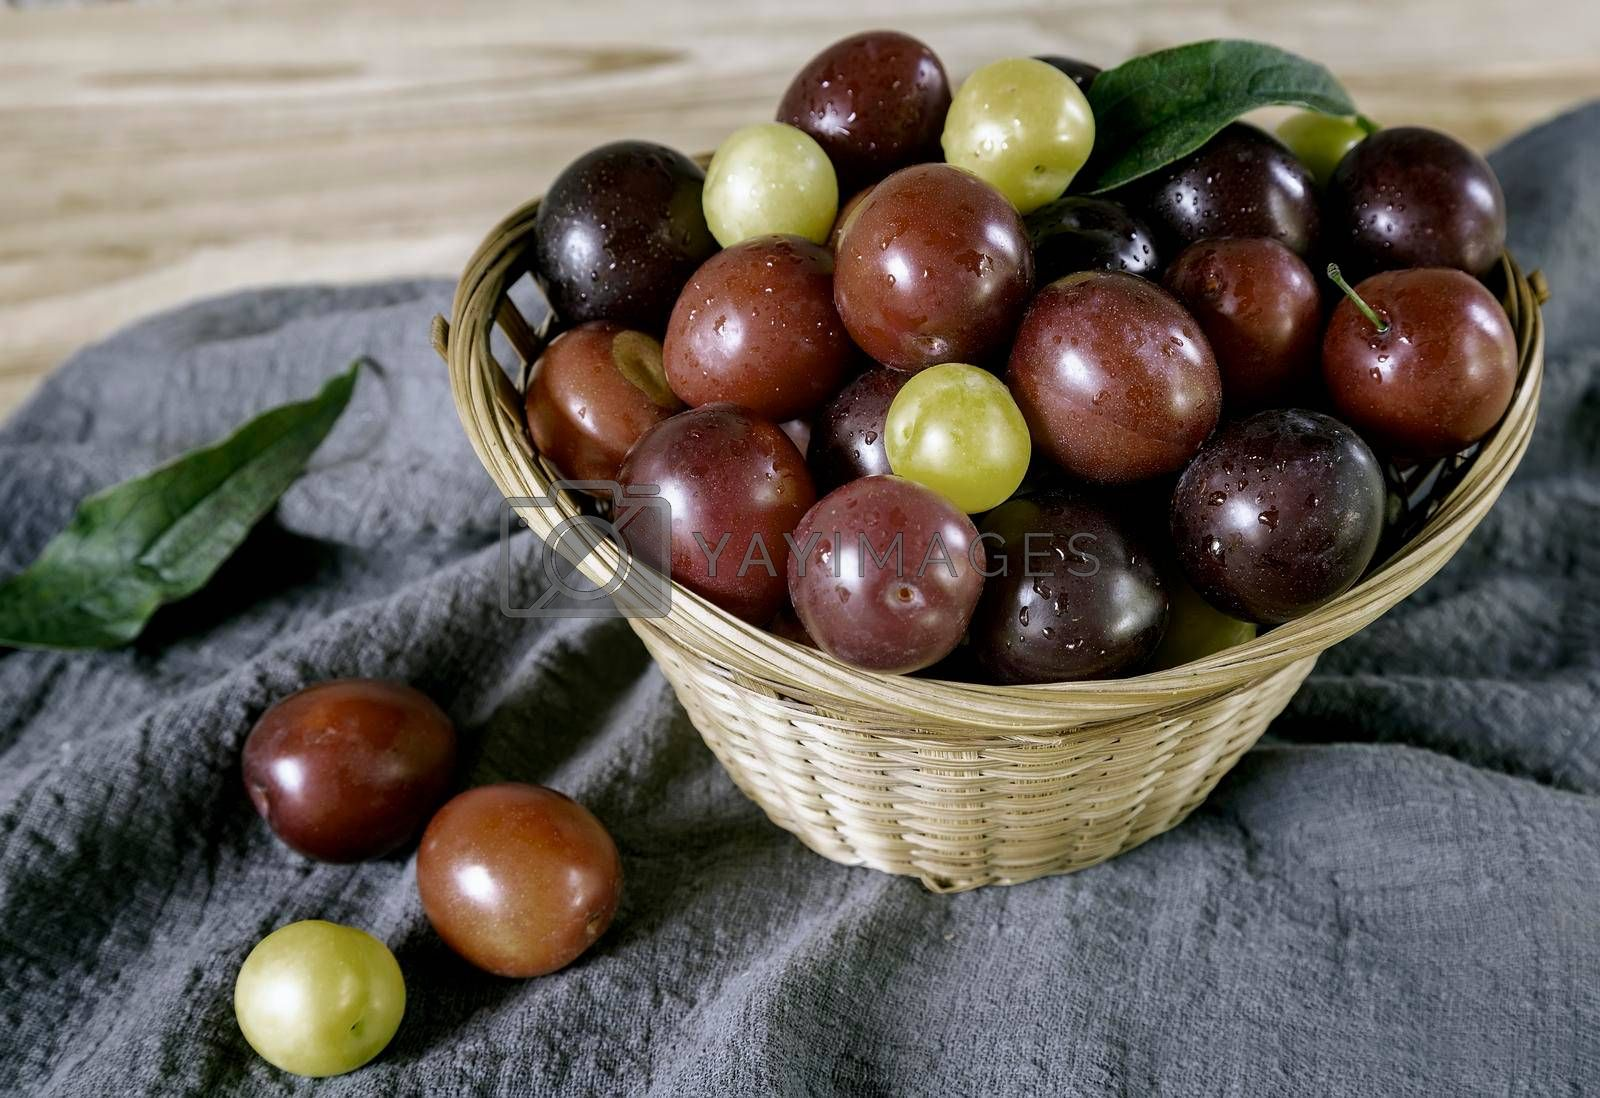 Royalty free image of Large ripe plums in a wicker basket. by georgina198